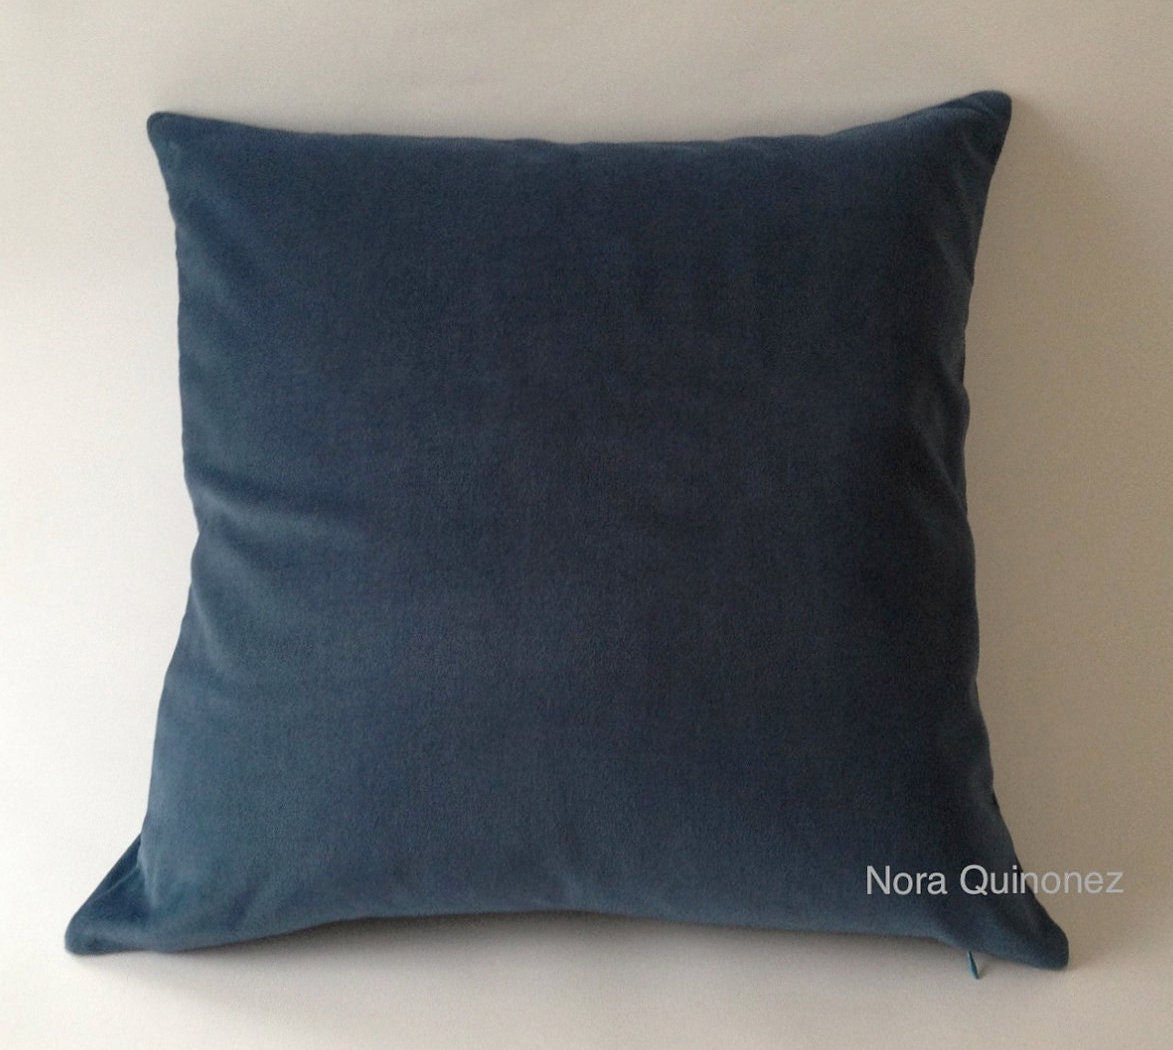 Teal Blue Throw Pillow : Teal Blue Cotton Velvet Pillow Cover Decorative Accent Throw